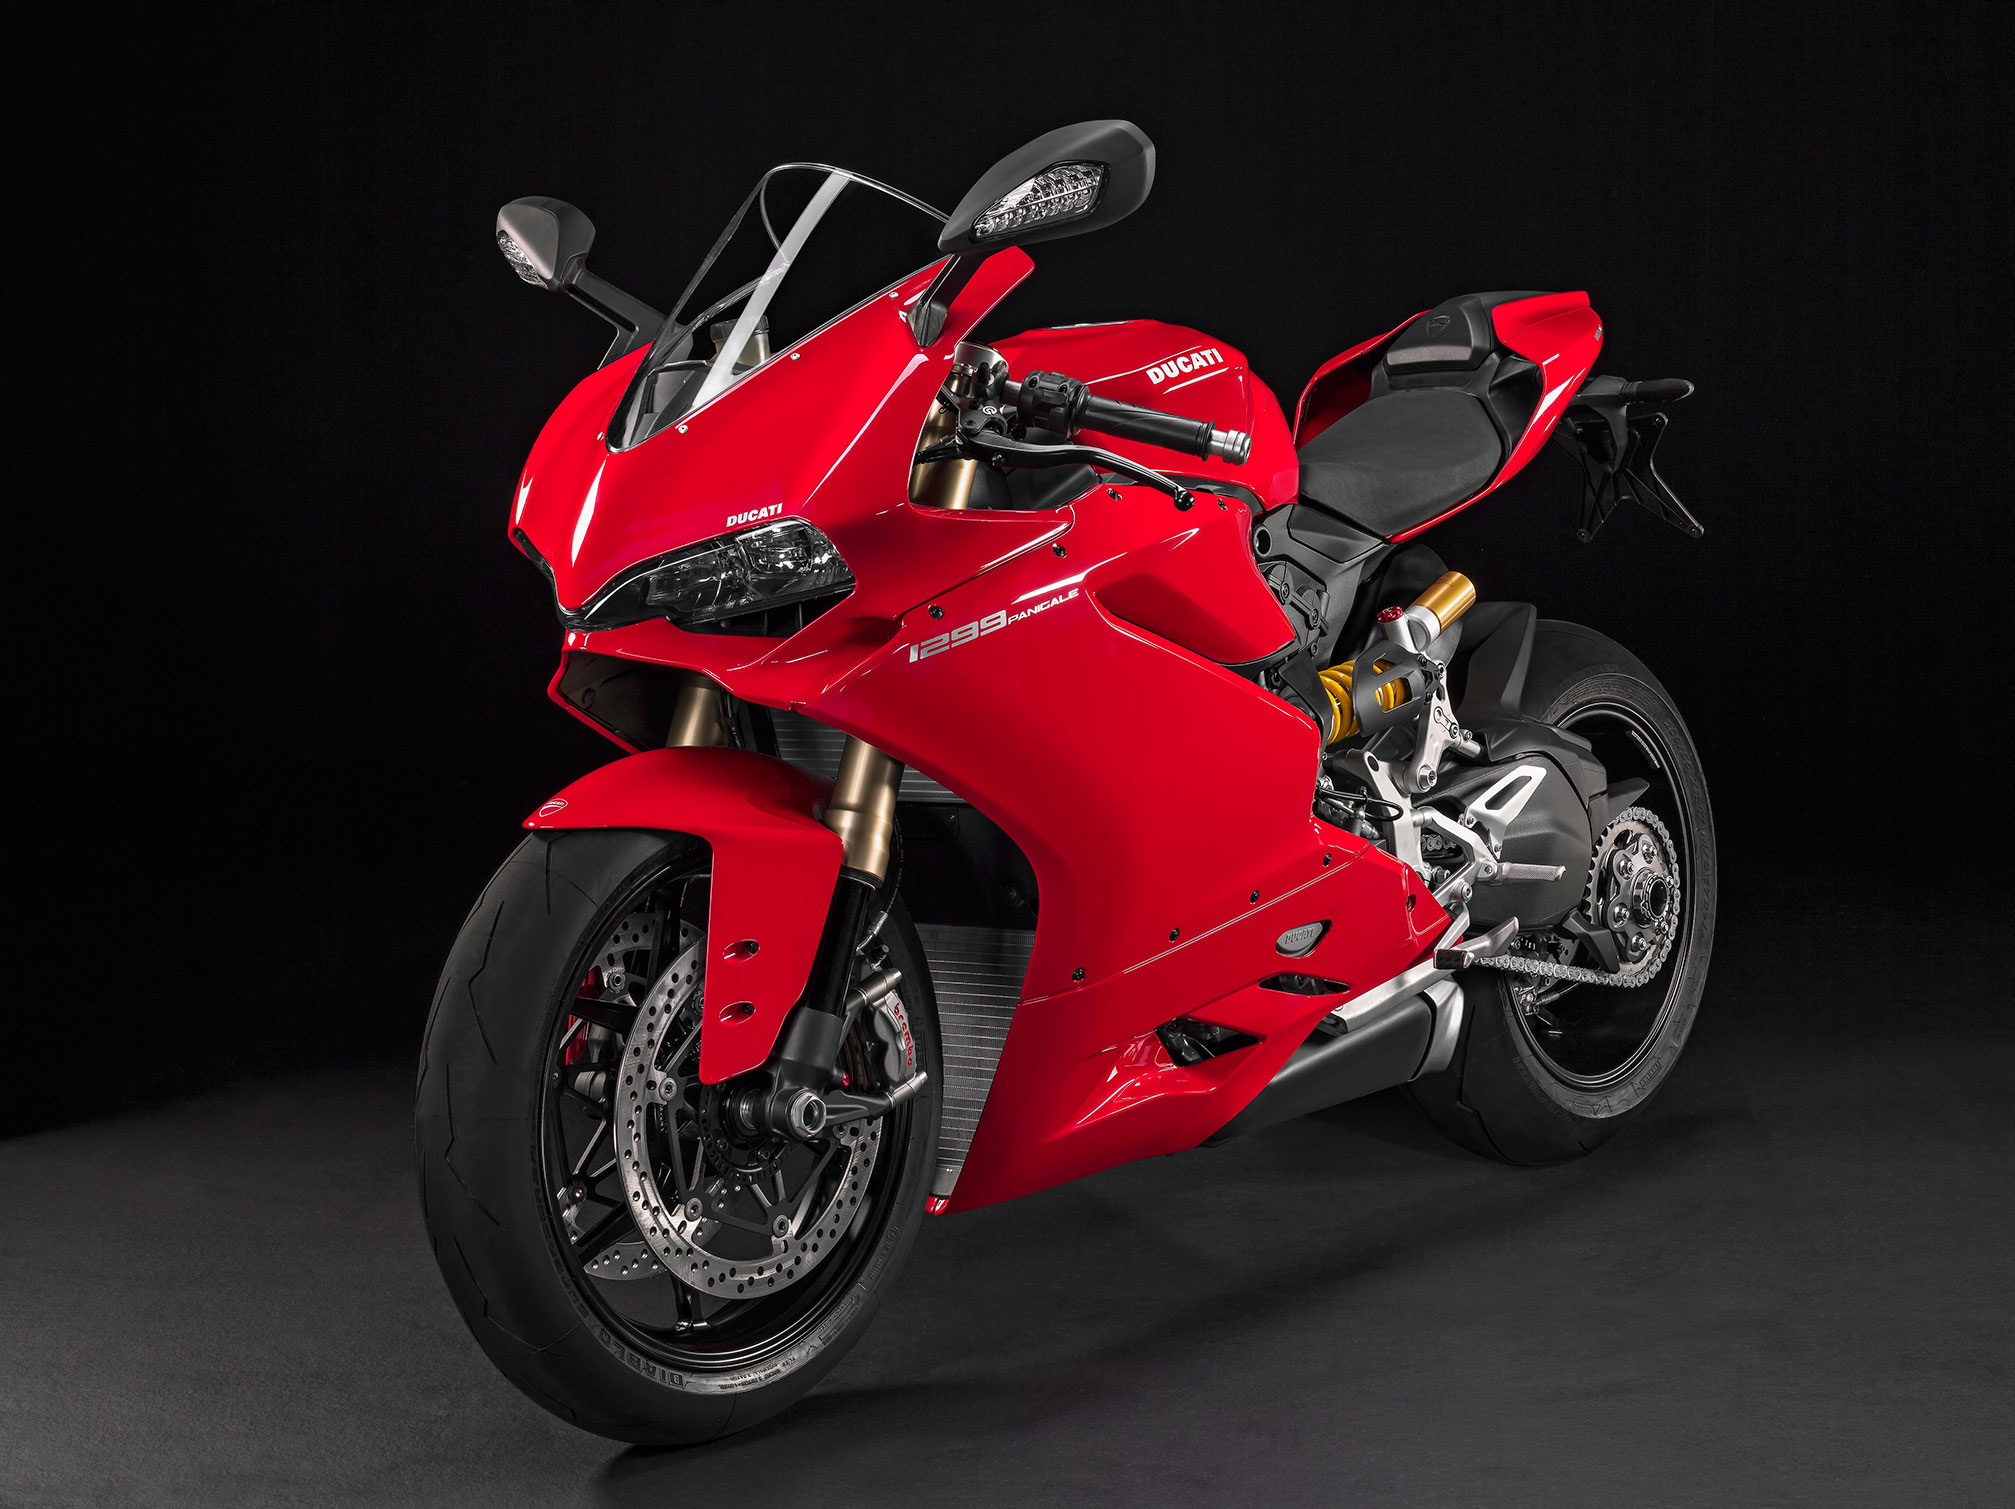 Ducati 1299 Panigale S 4k Wallpapers: Ducati 1299 Panigale S Wallpaper